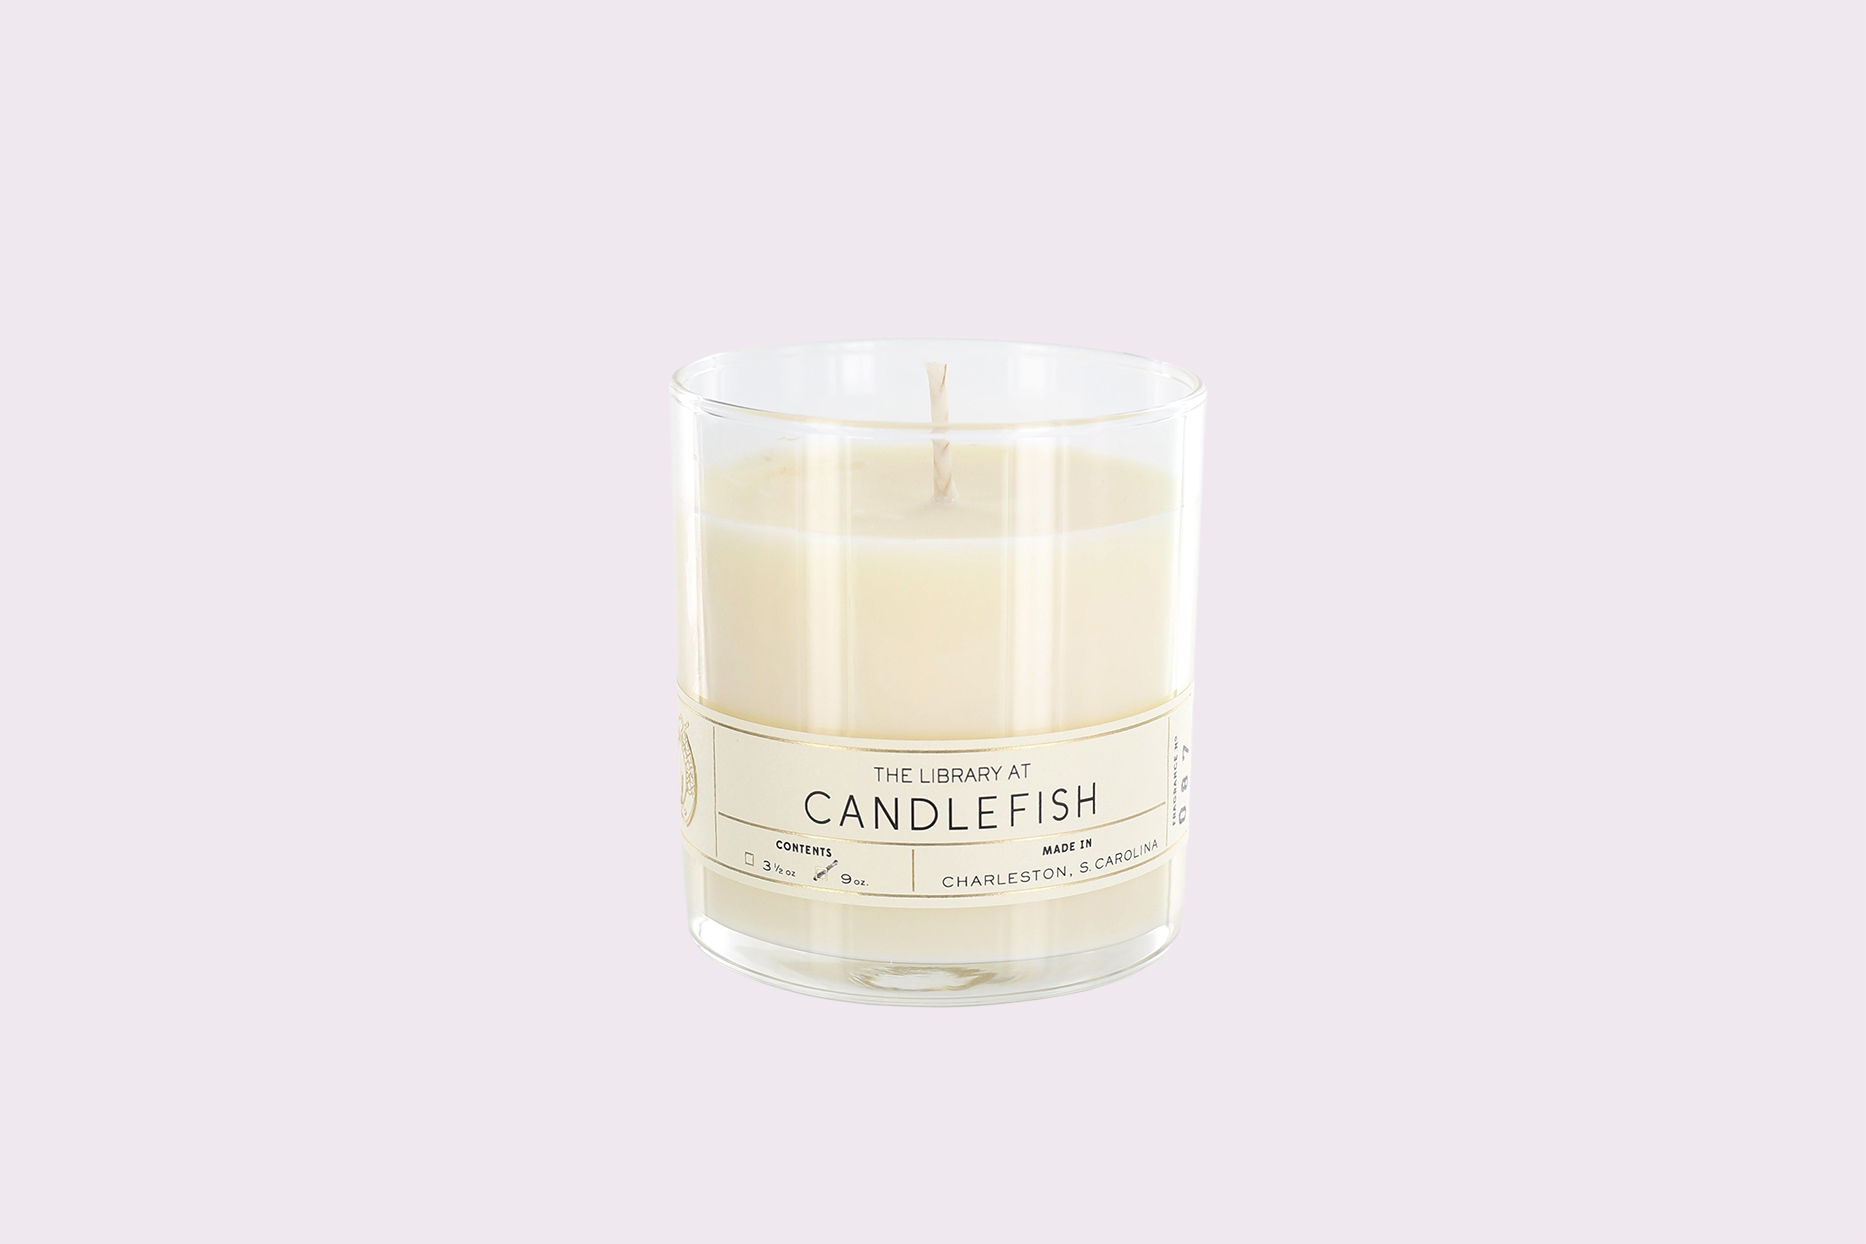 candlefish candle in glass jar